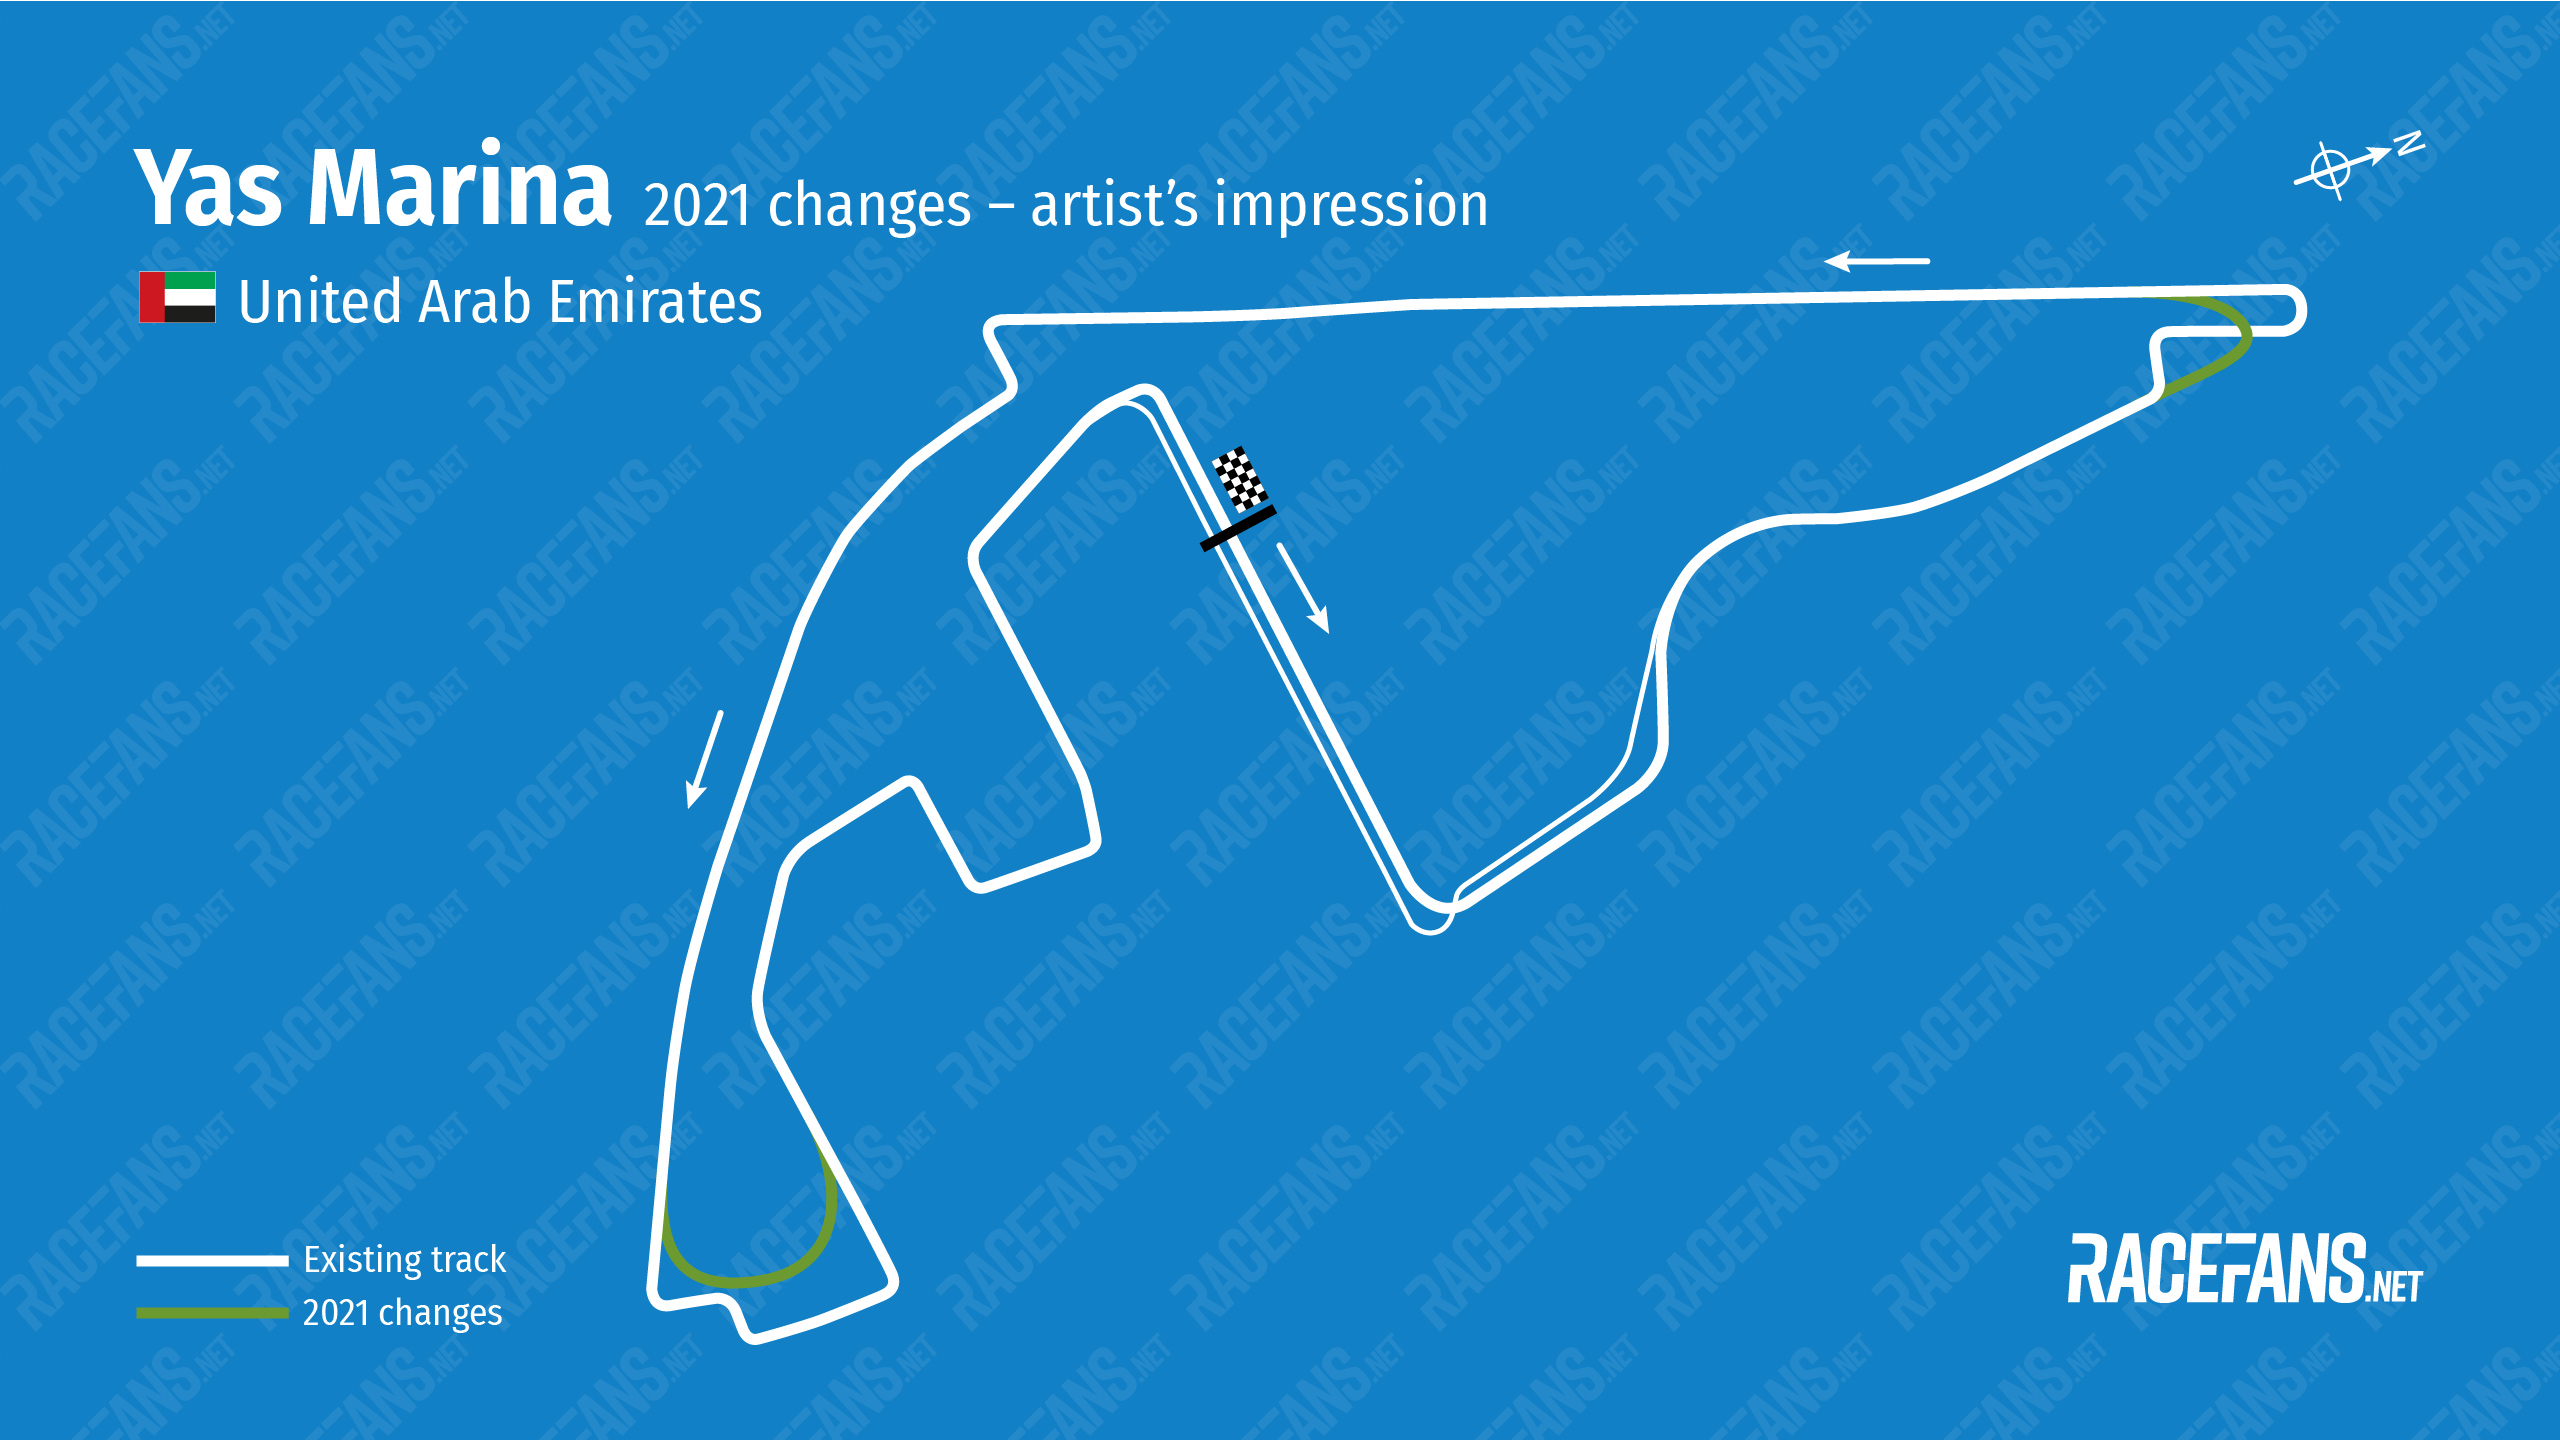 Artist's impression: Changes to Yas Marina circuit for 2021